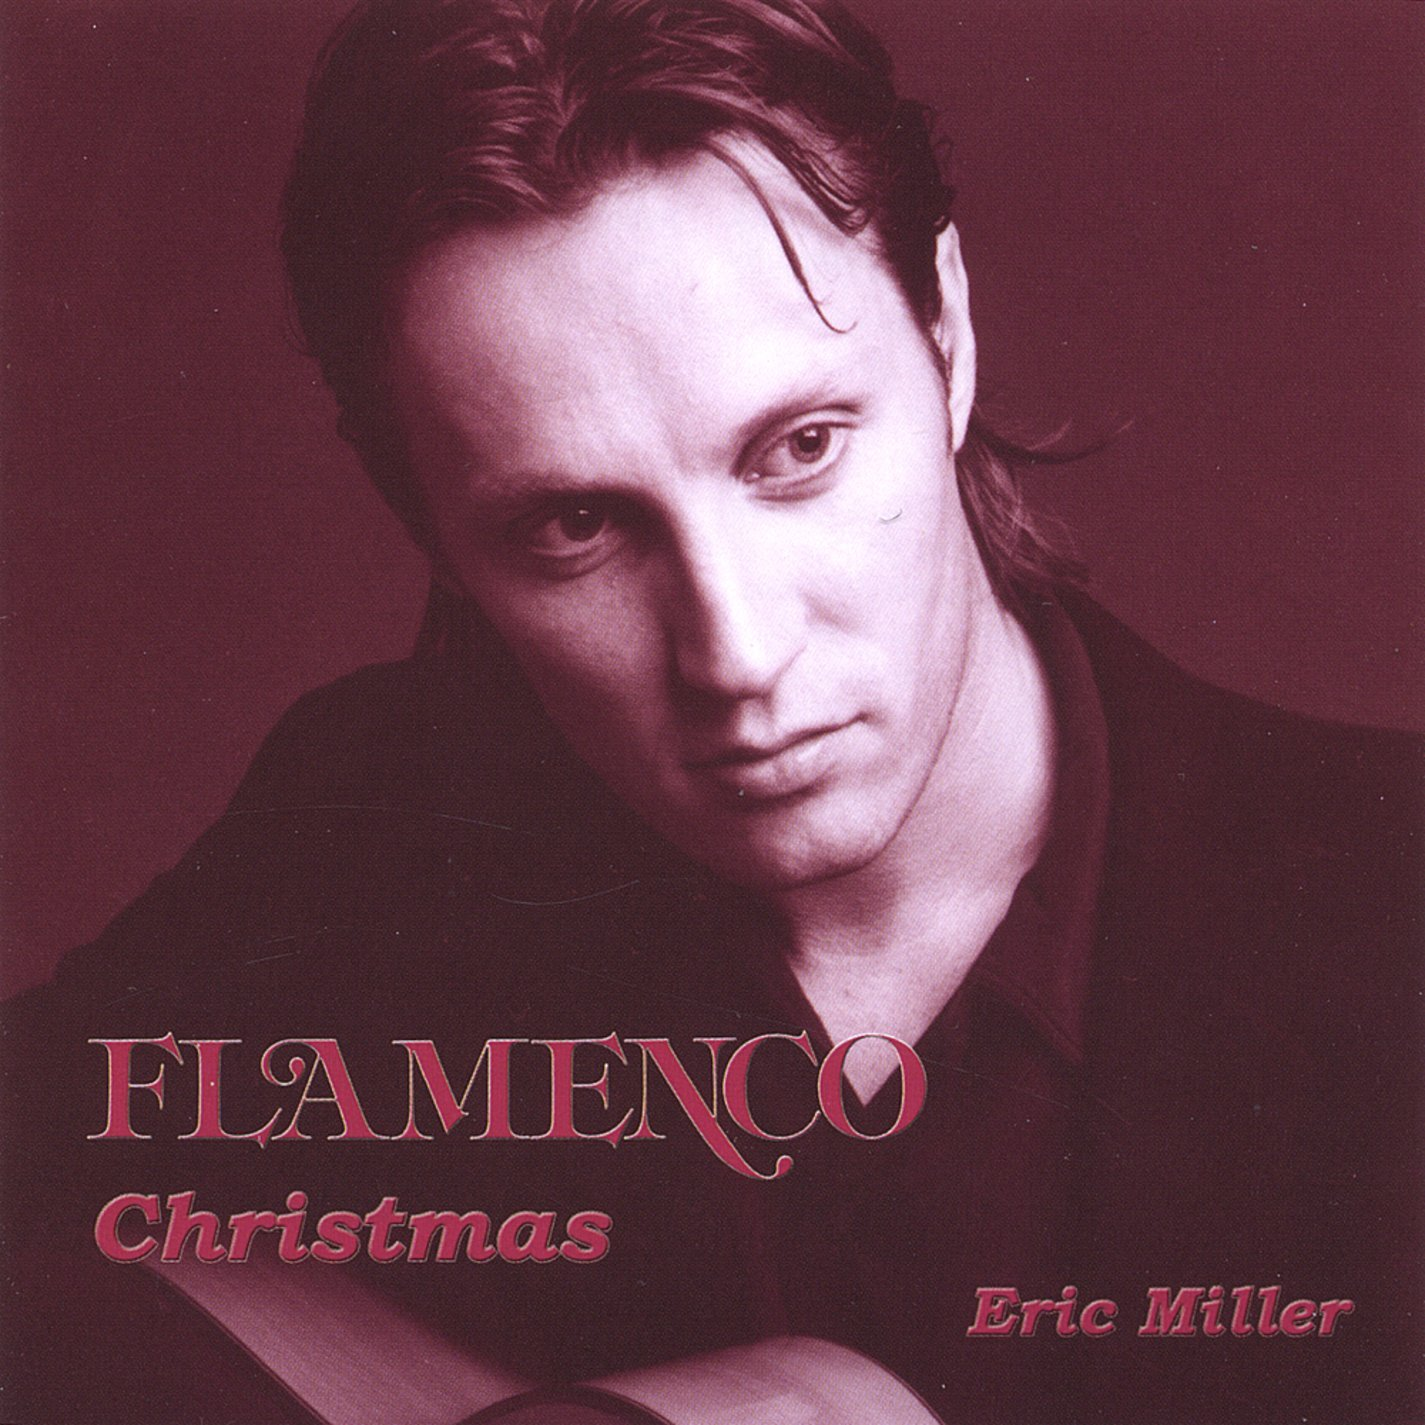 Image for Flamenco Christmas. Eric Miller, Audio Music CD